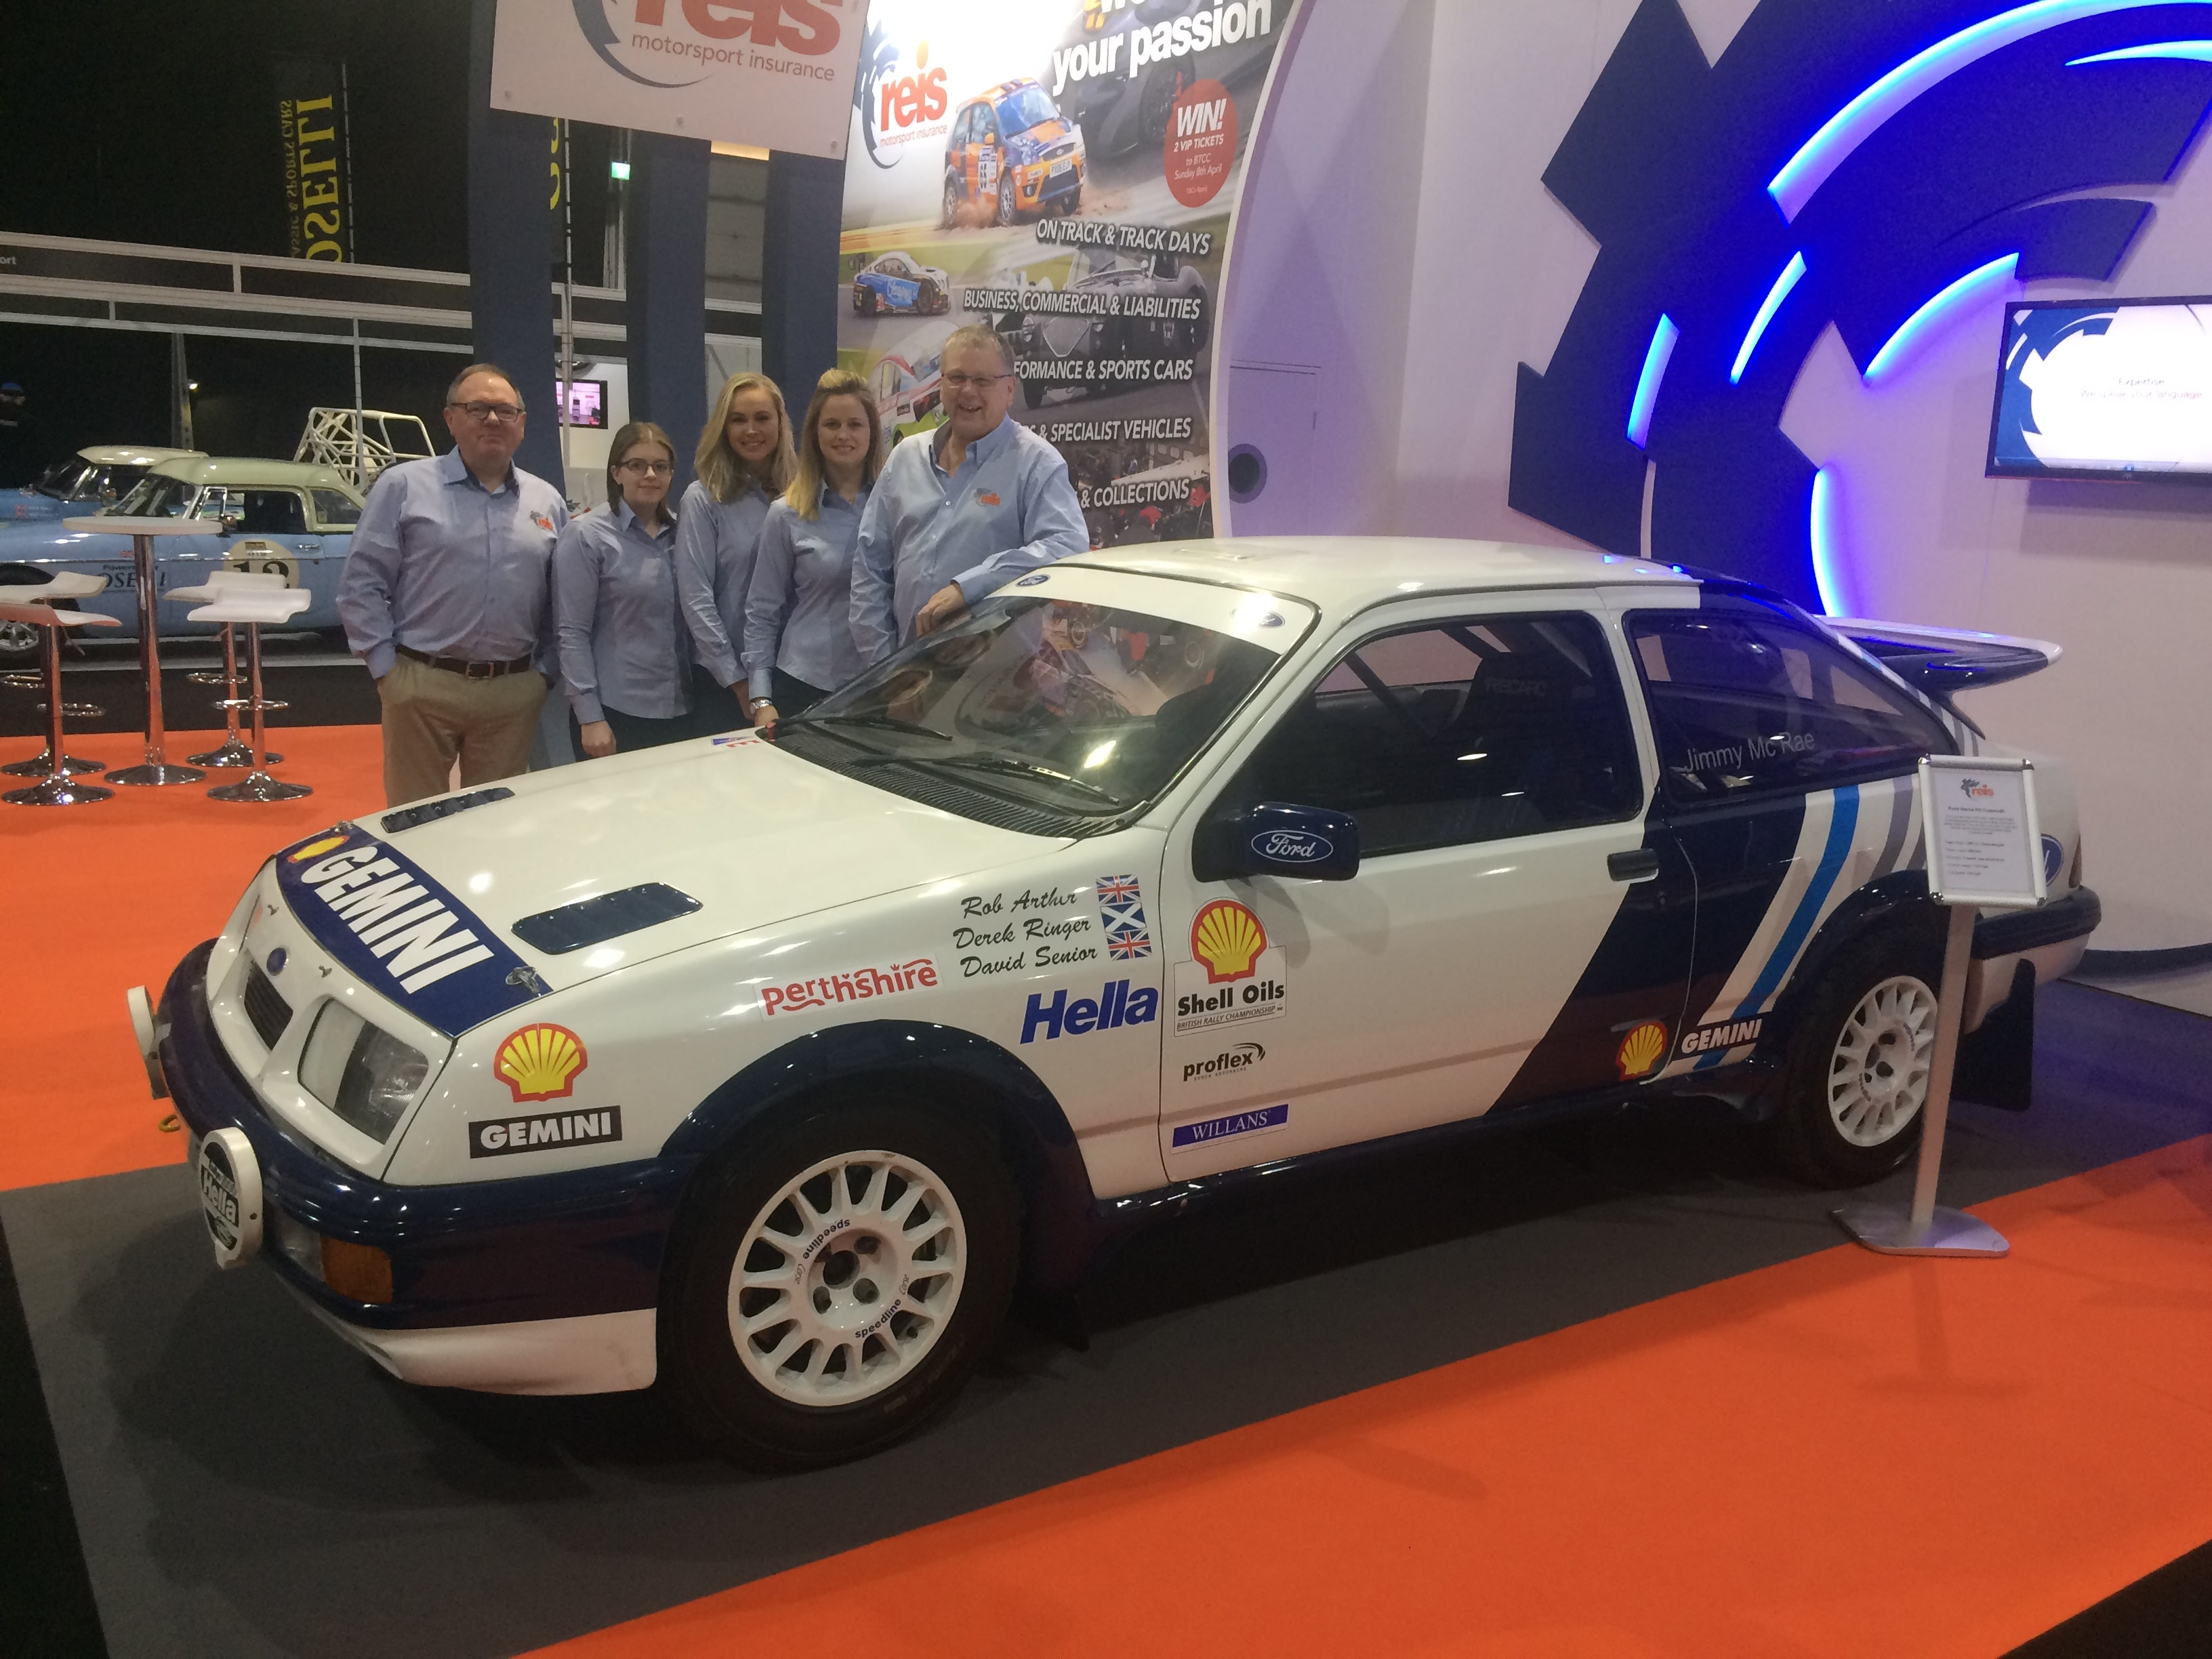 Reis Motorsport Insurance | The Reis team at Race Retro 2018